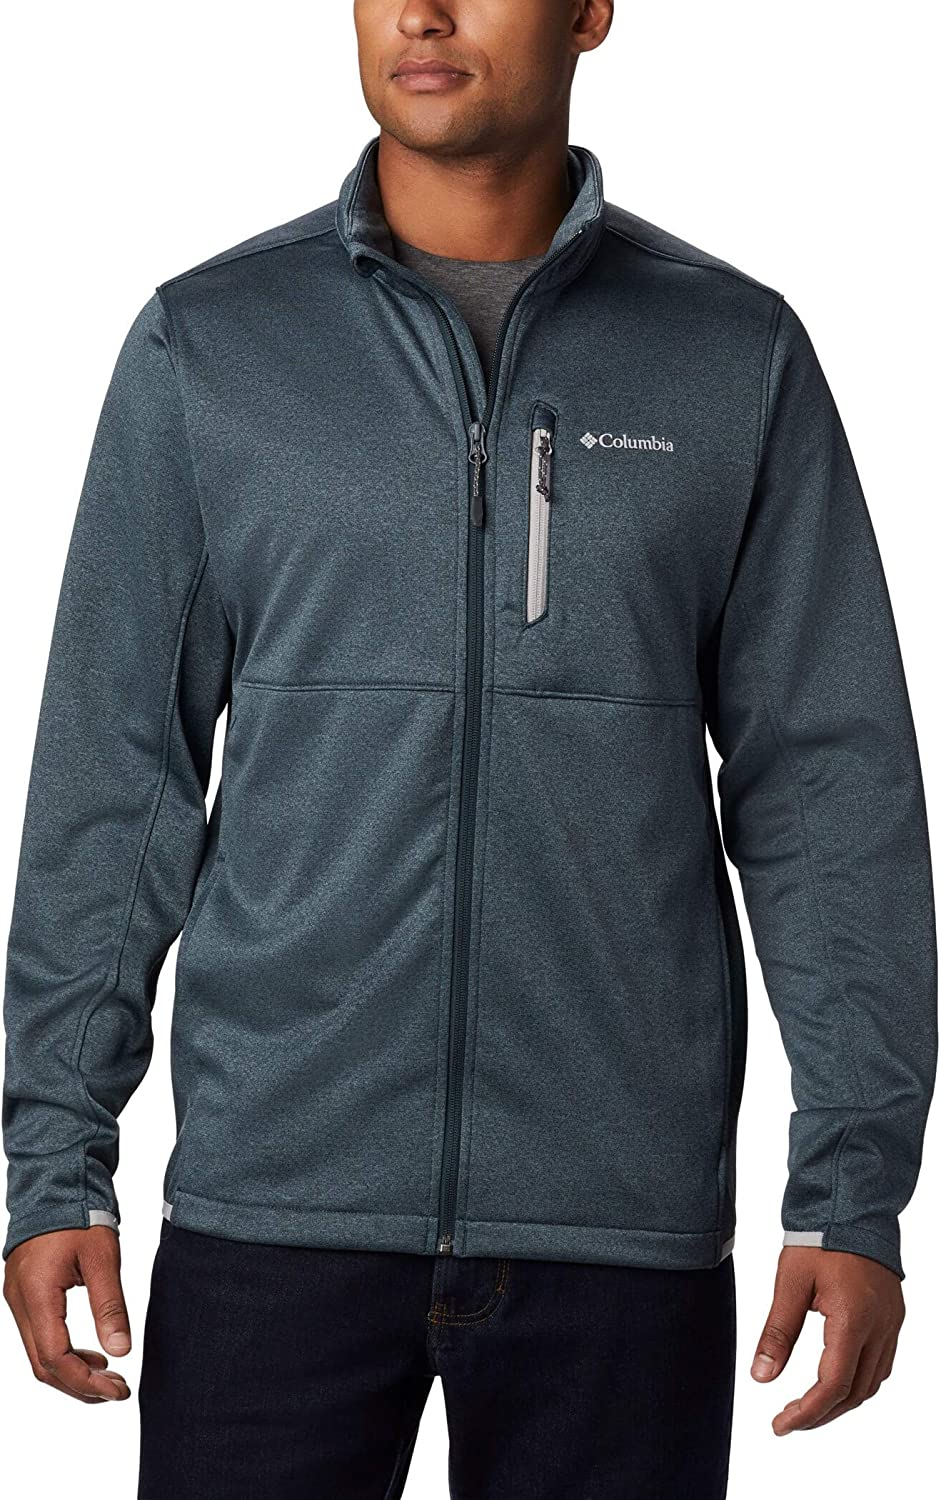 Homme Columbia Outdoor Elements Polaire Fermeture Zipp/ée/